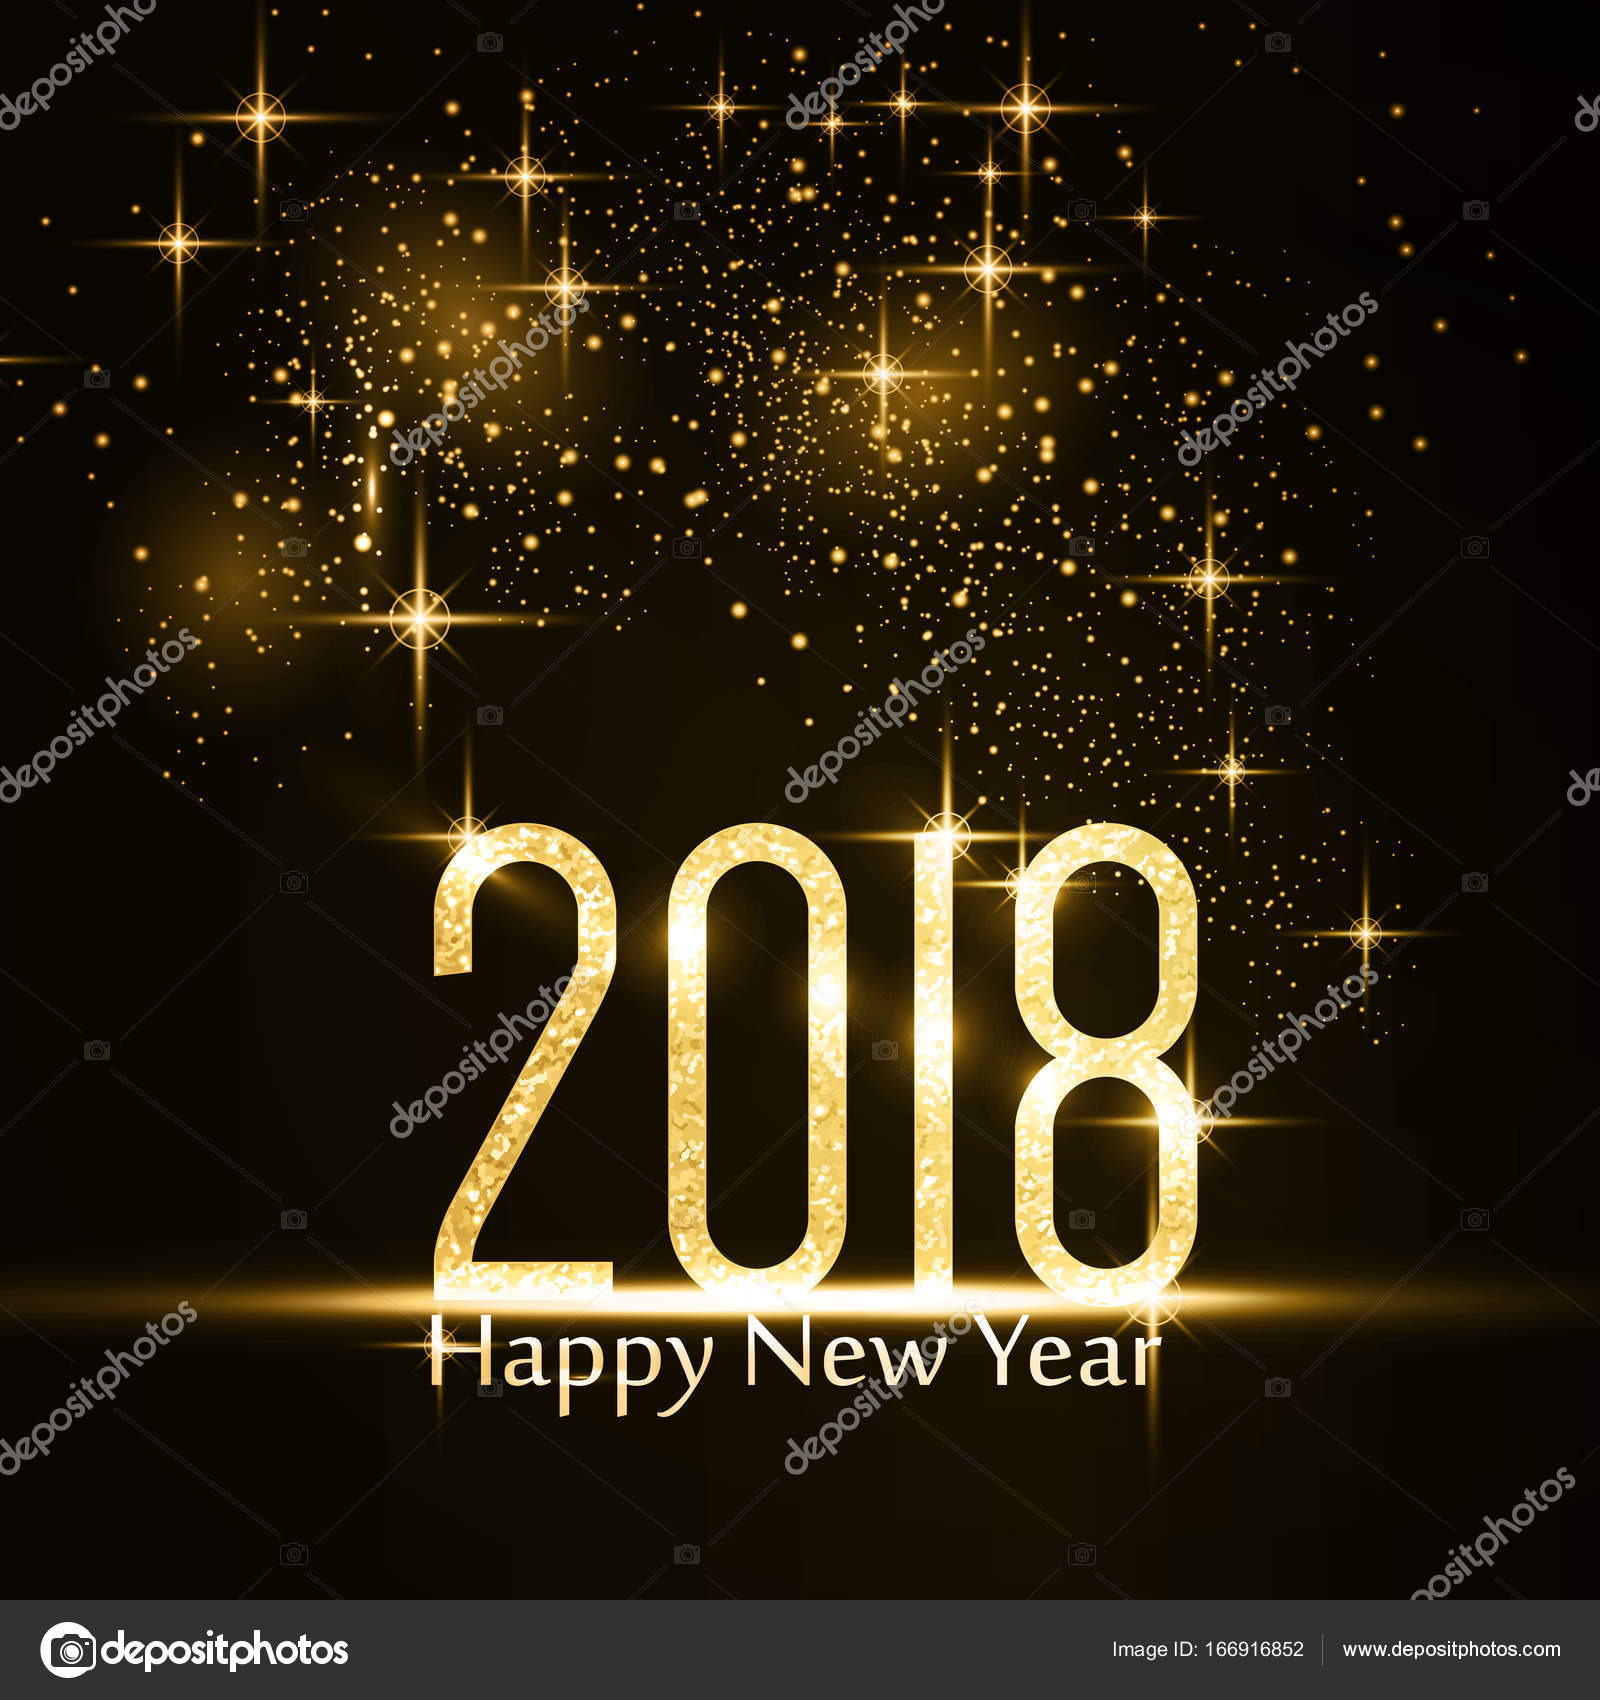 happy new year 2018 background with gold glitter stock vector